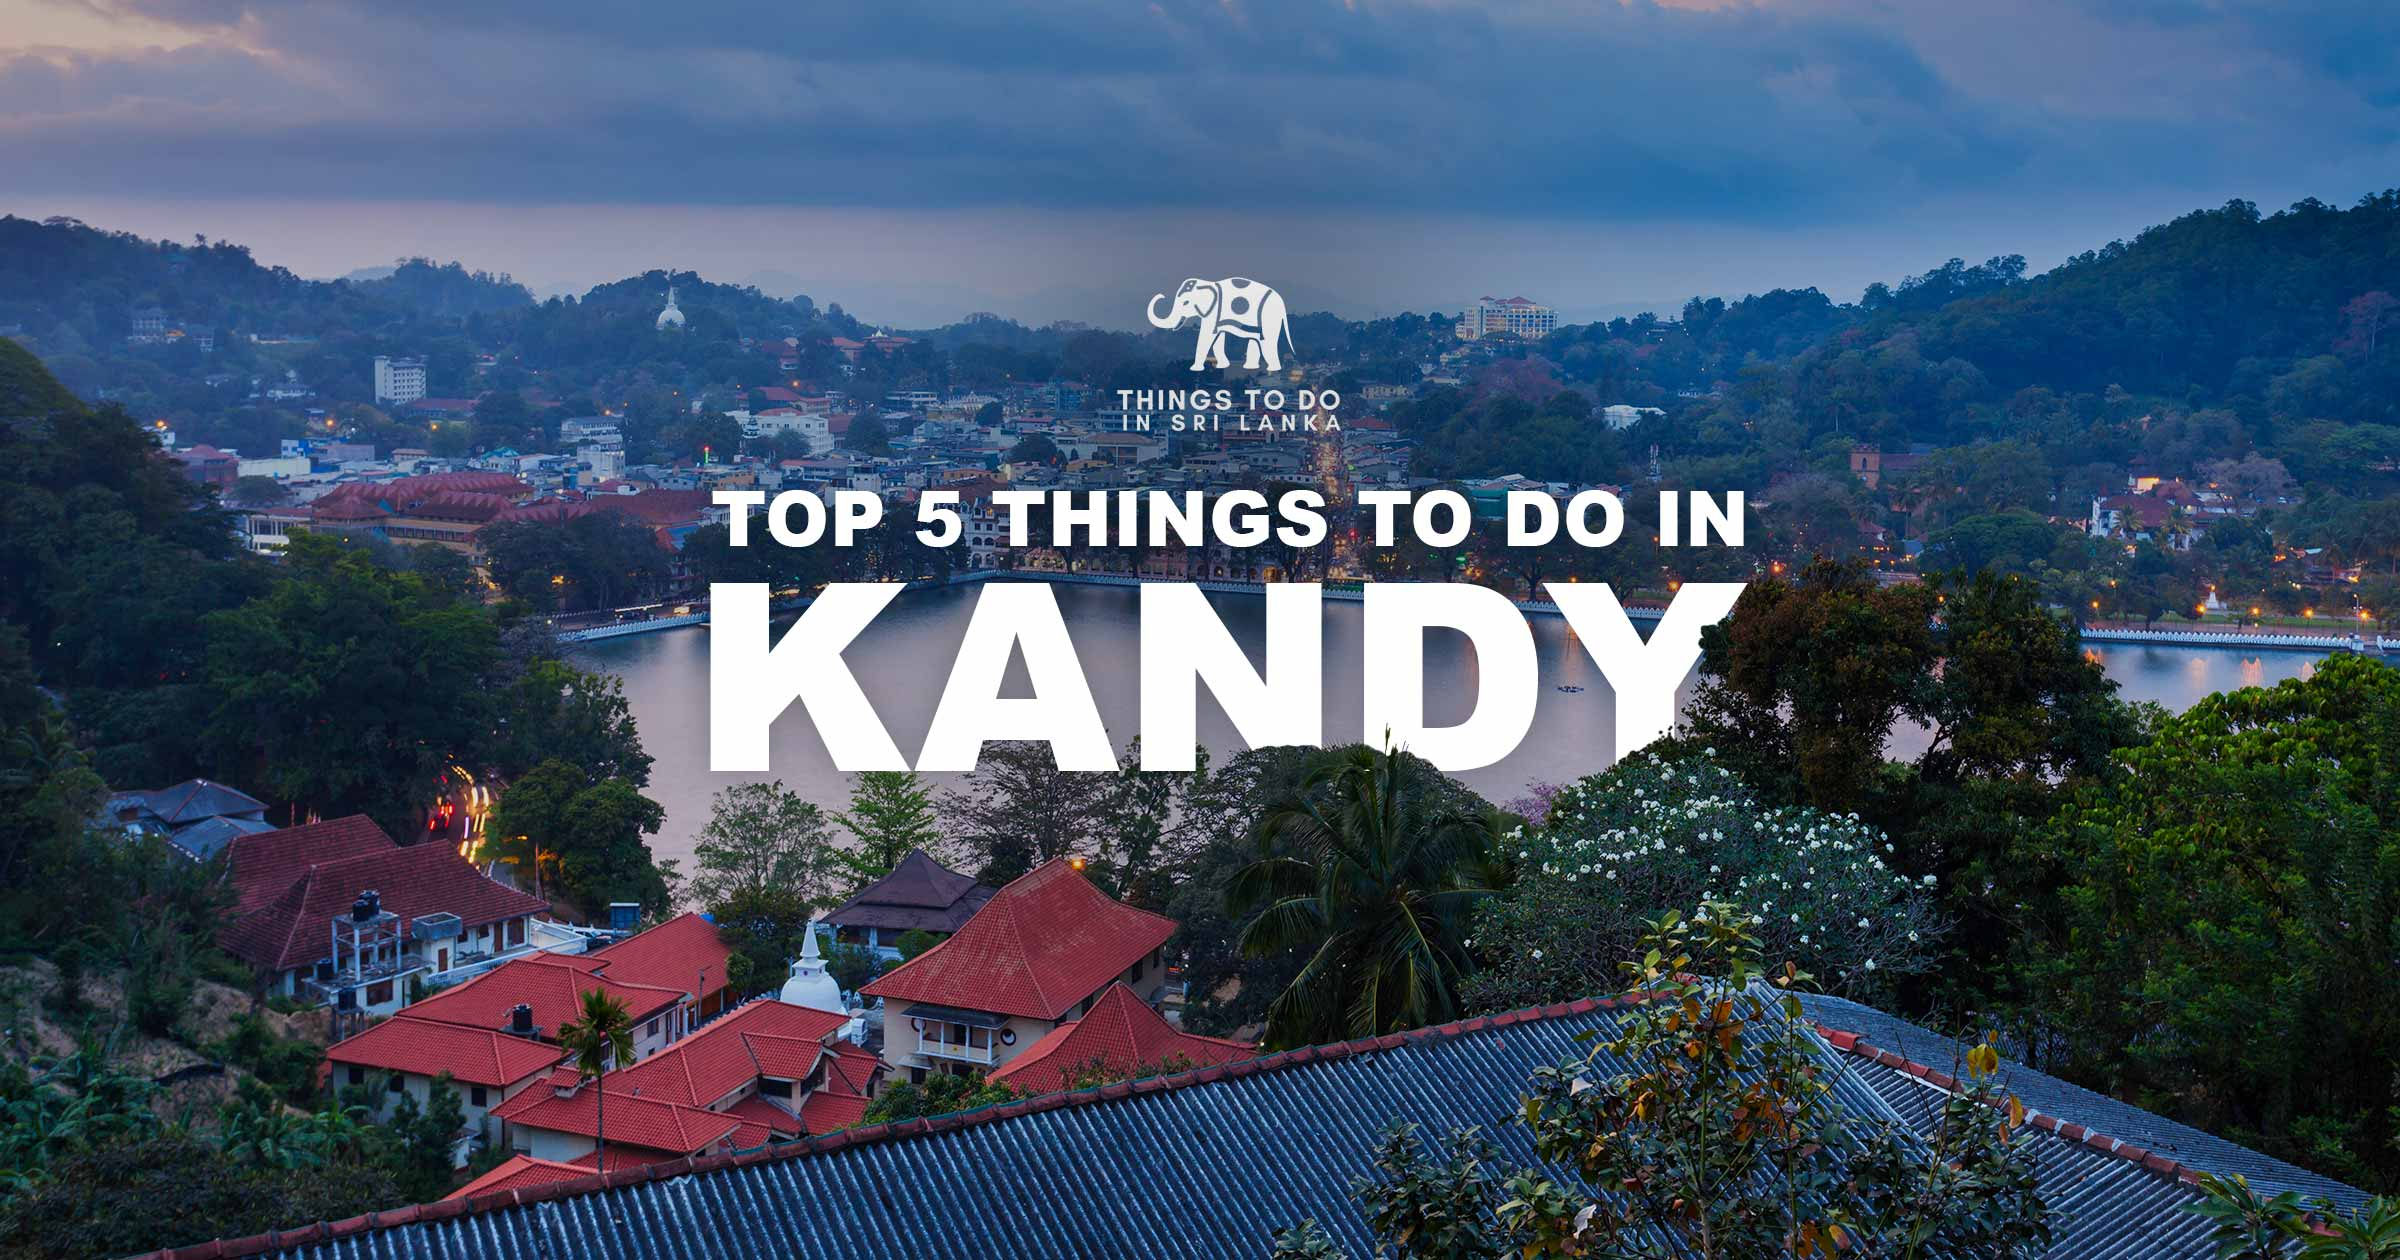 Top 5 things to do in Kandy